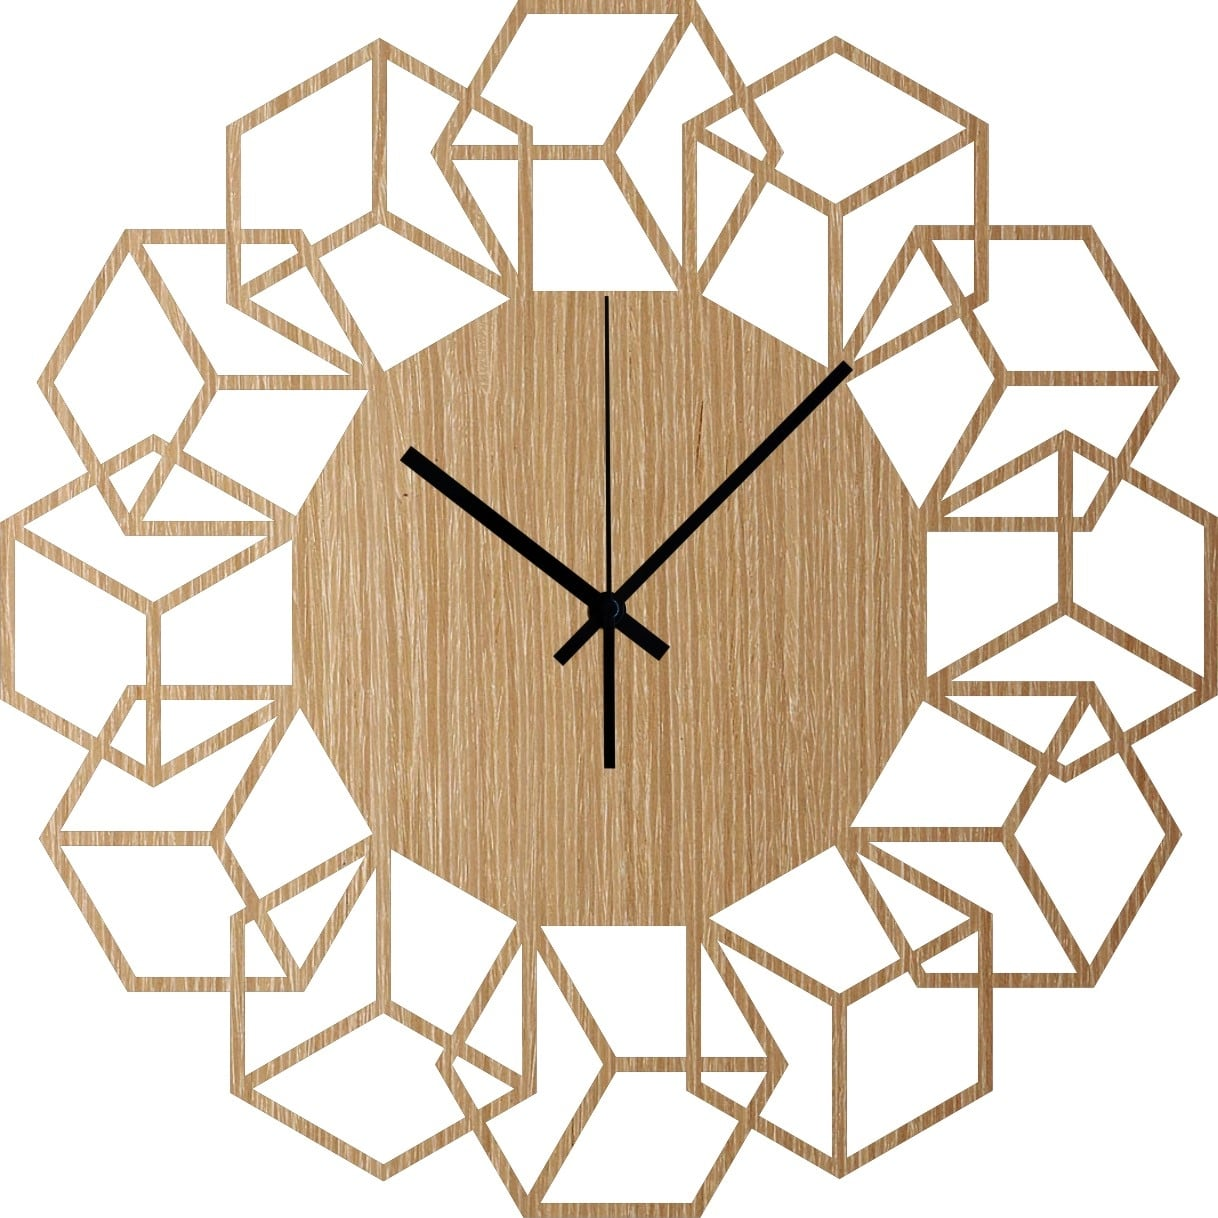 Trendy wood wall clock with a flower design for interior